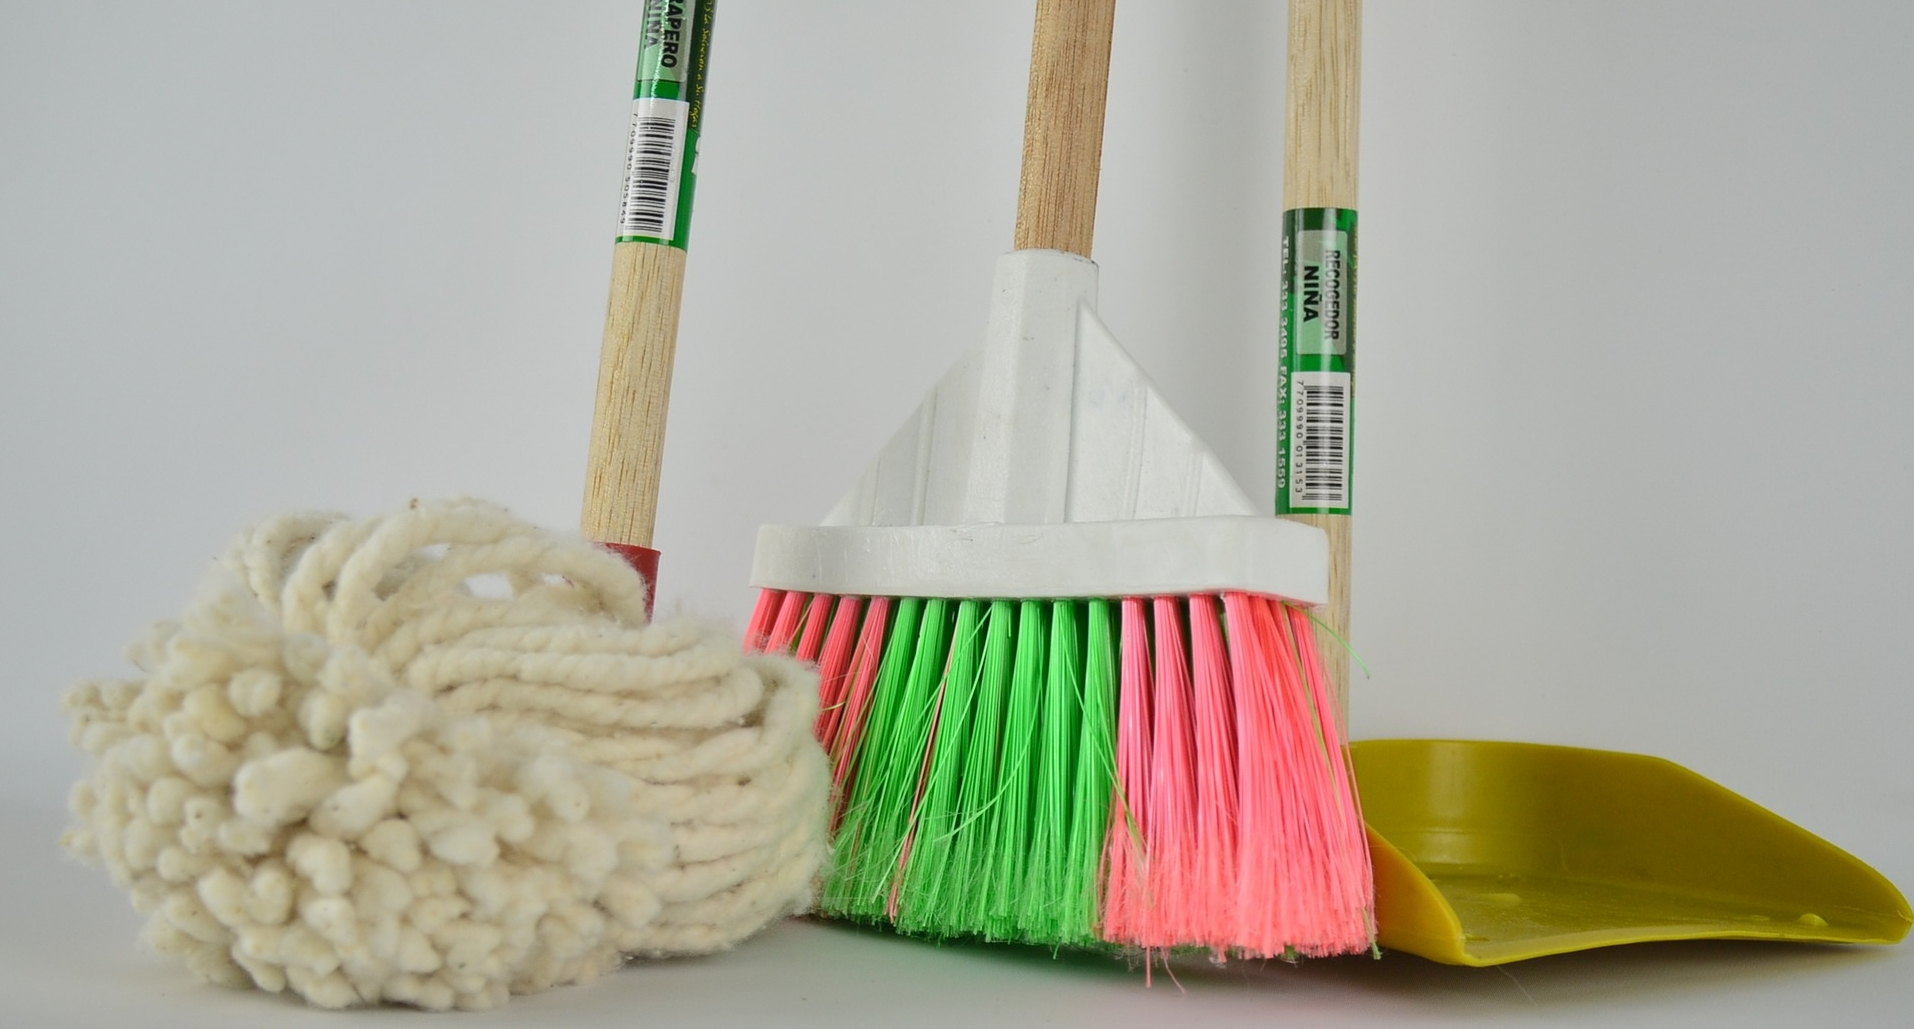 cleaning tools.jpg